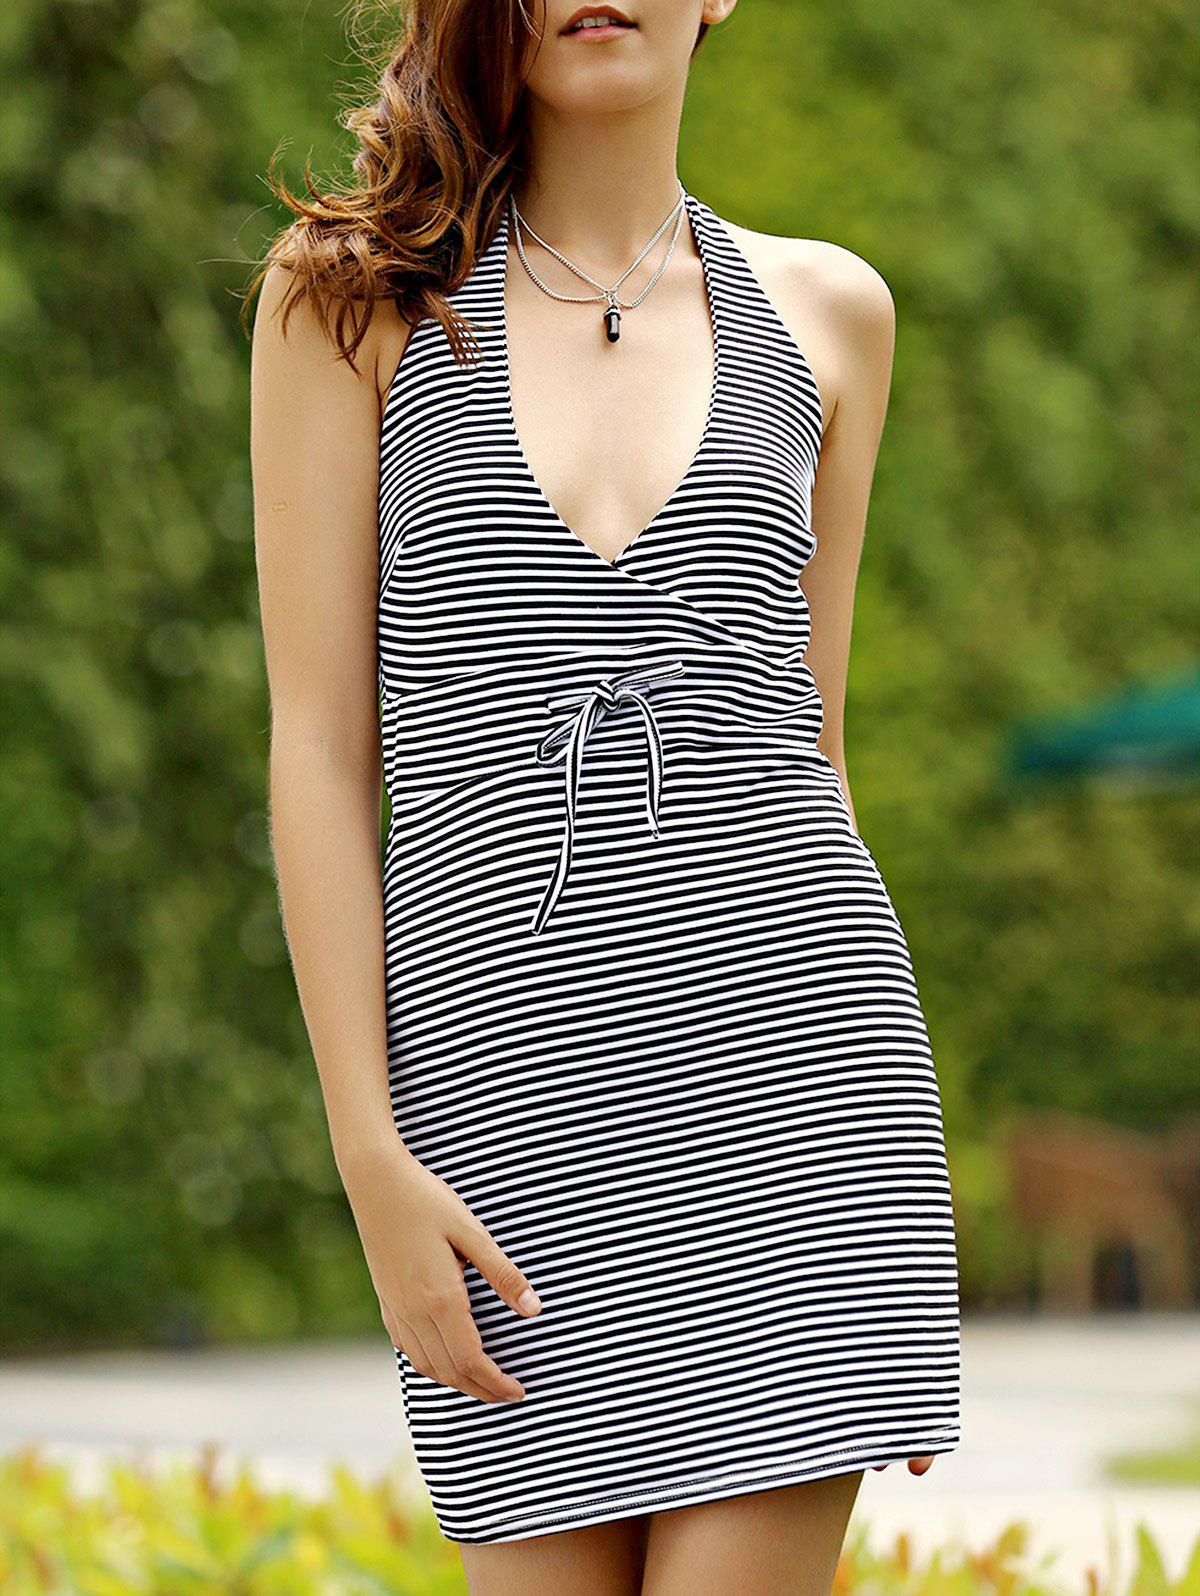 Leisure Style Halter Backless Striped Women's Mini Dress